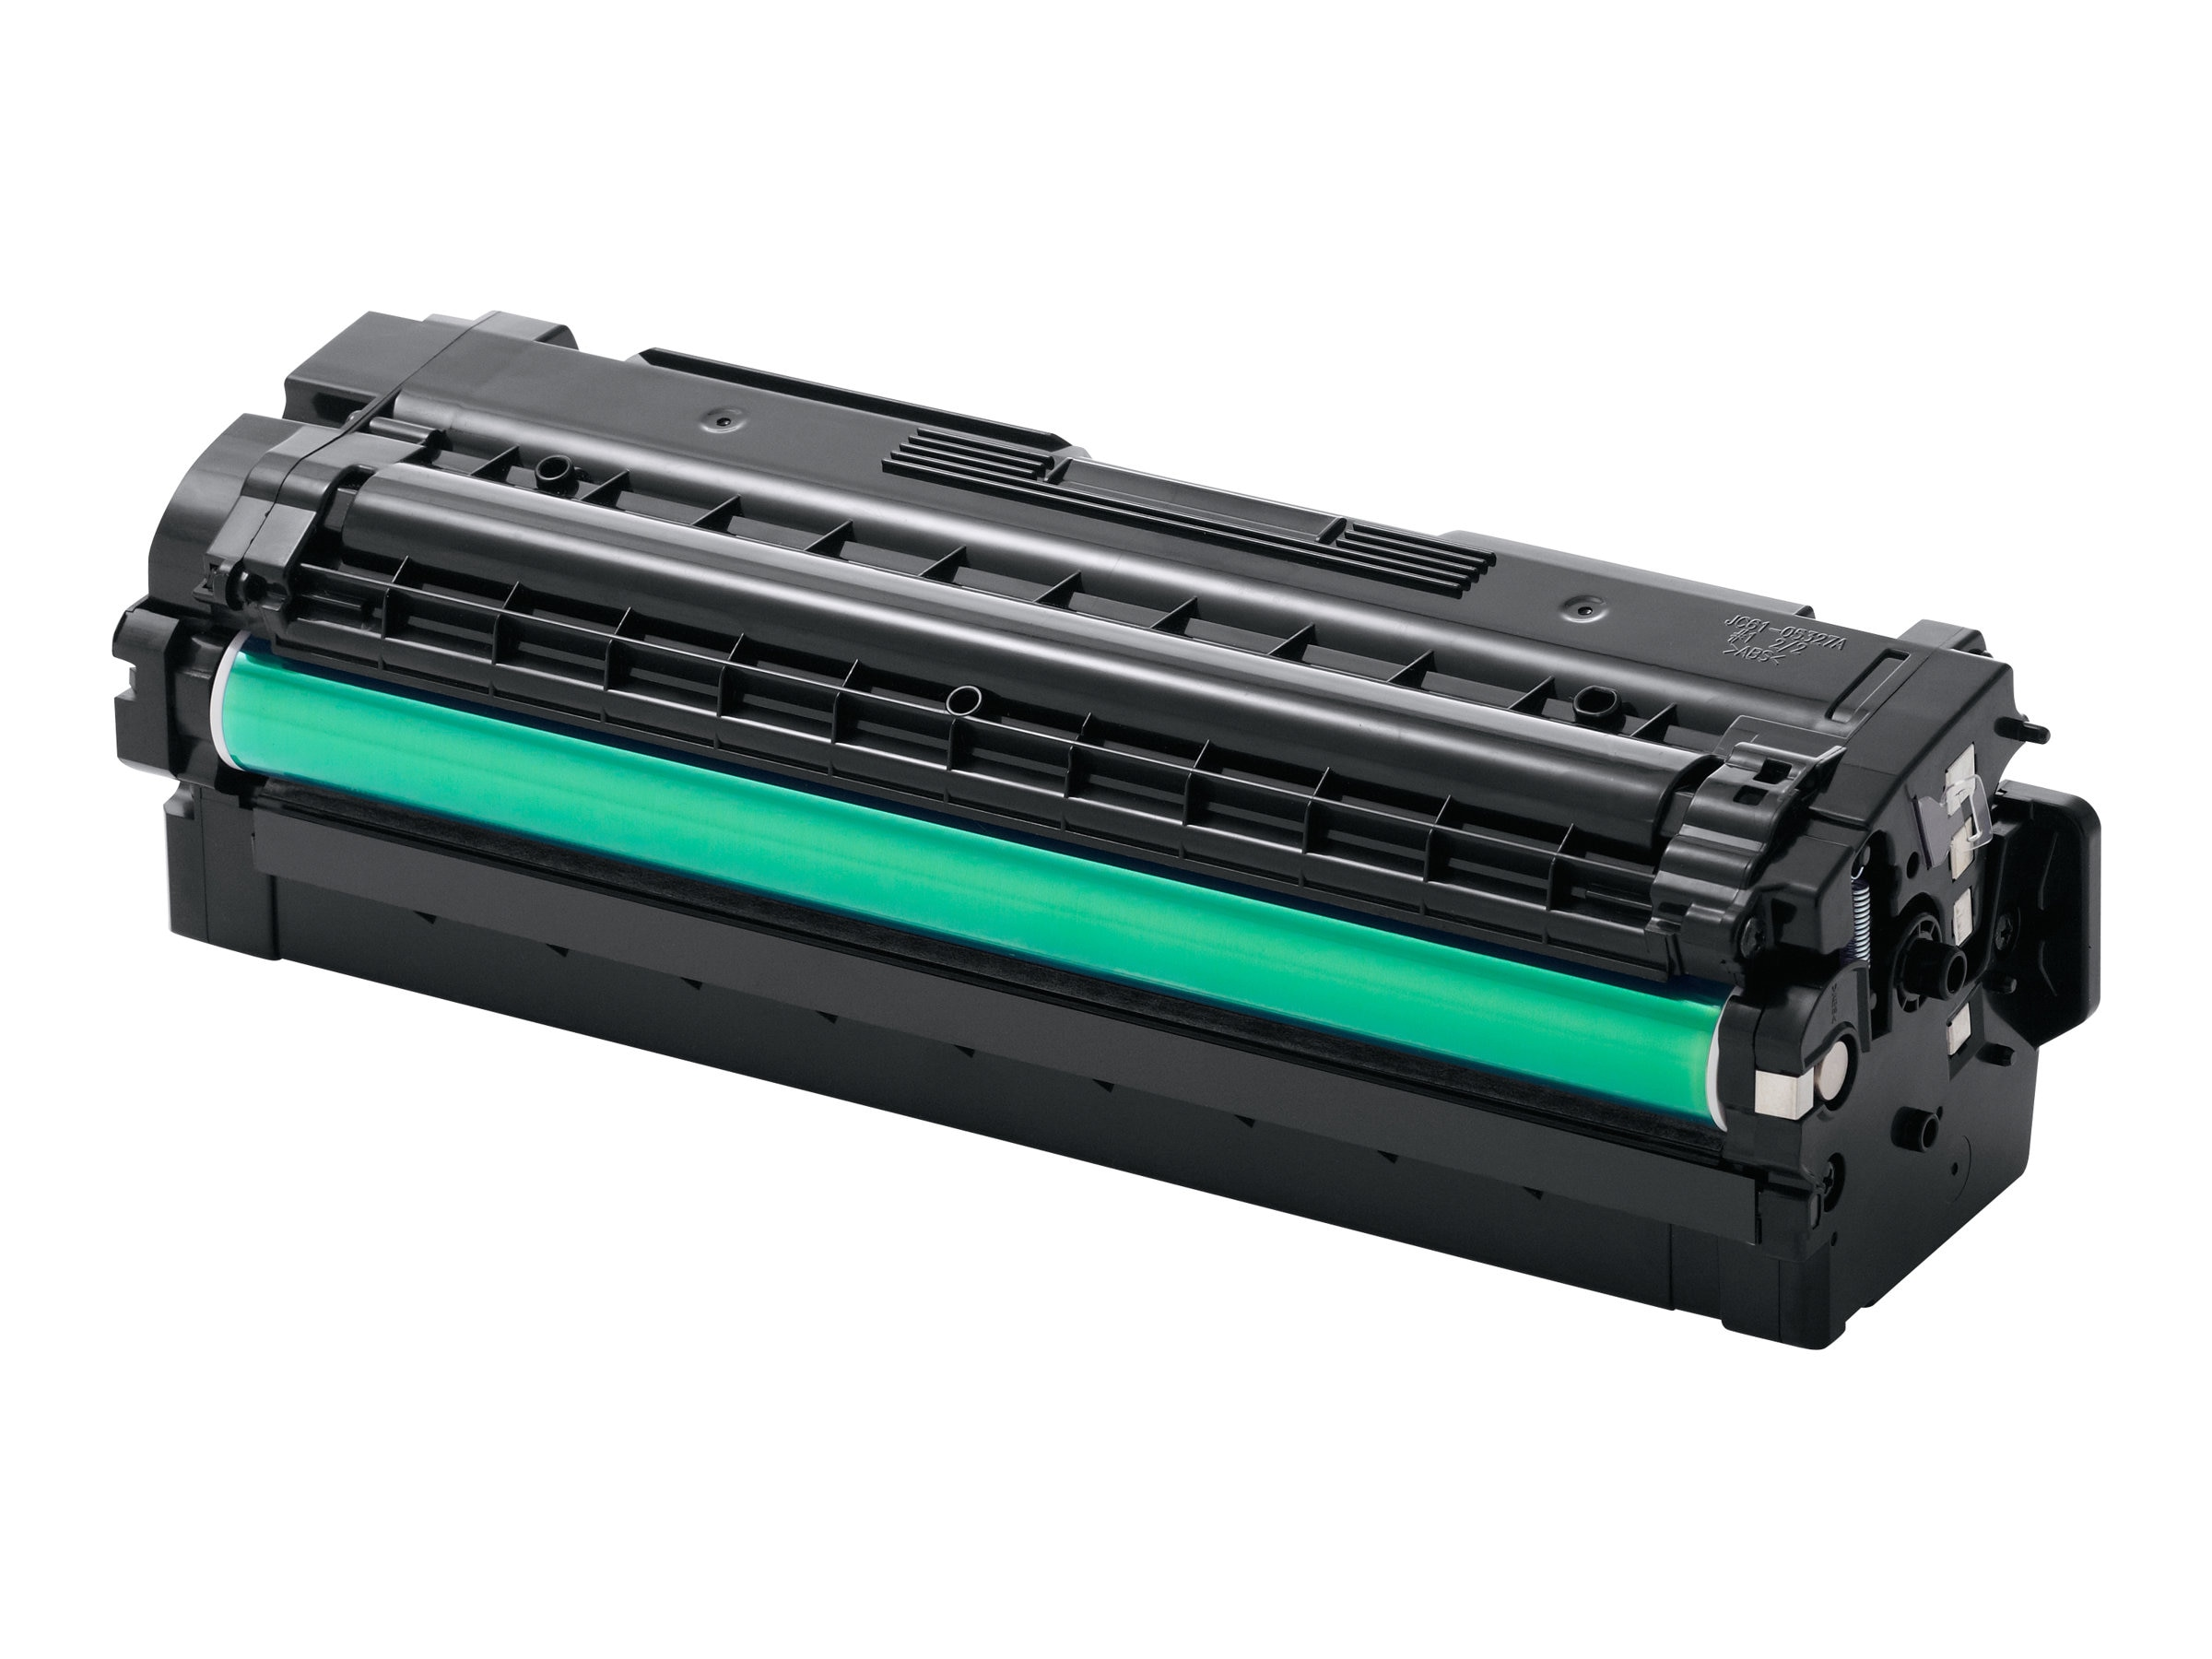 Samsung Black High Yield Toner Cartridge for CLX-6260FD & CLX-6260FW Color MFPs & CLP-680ND Color Printer